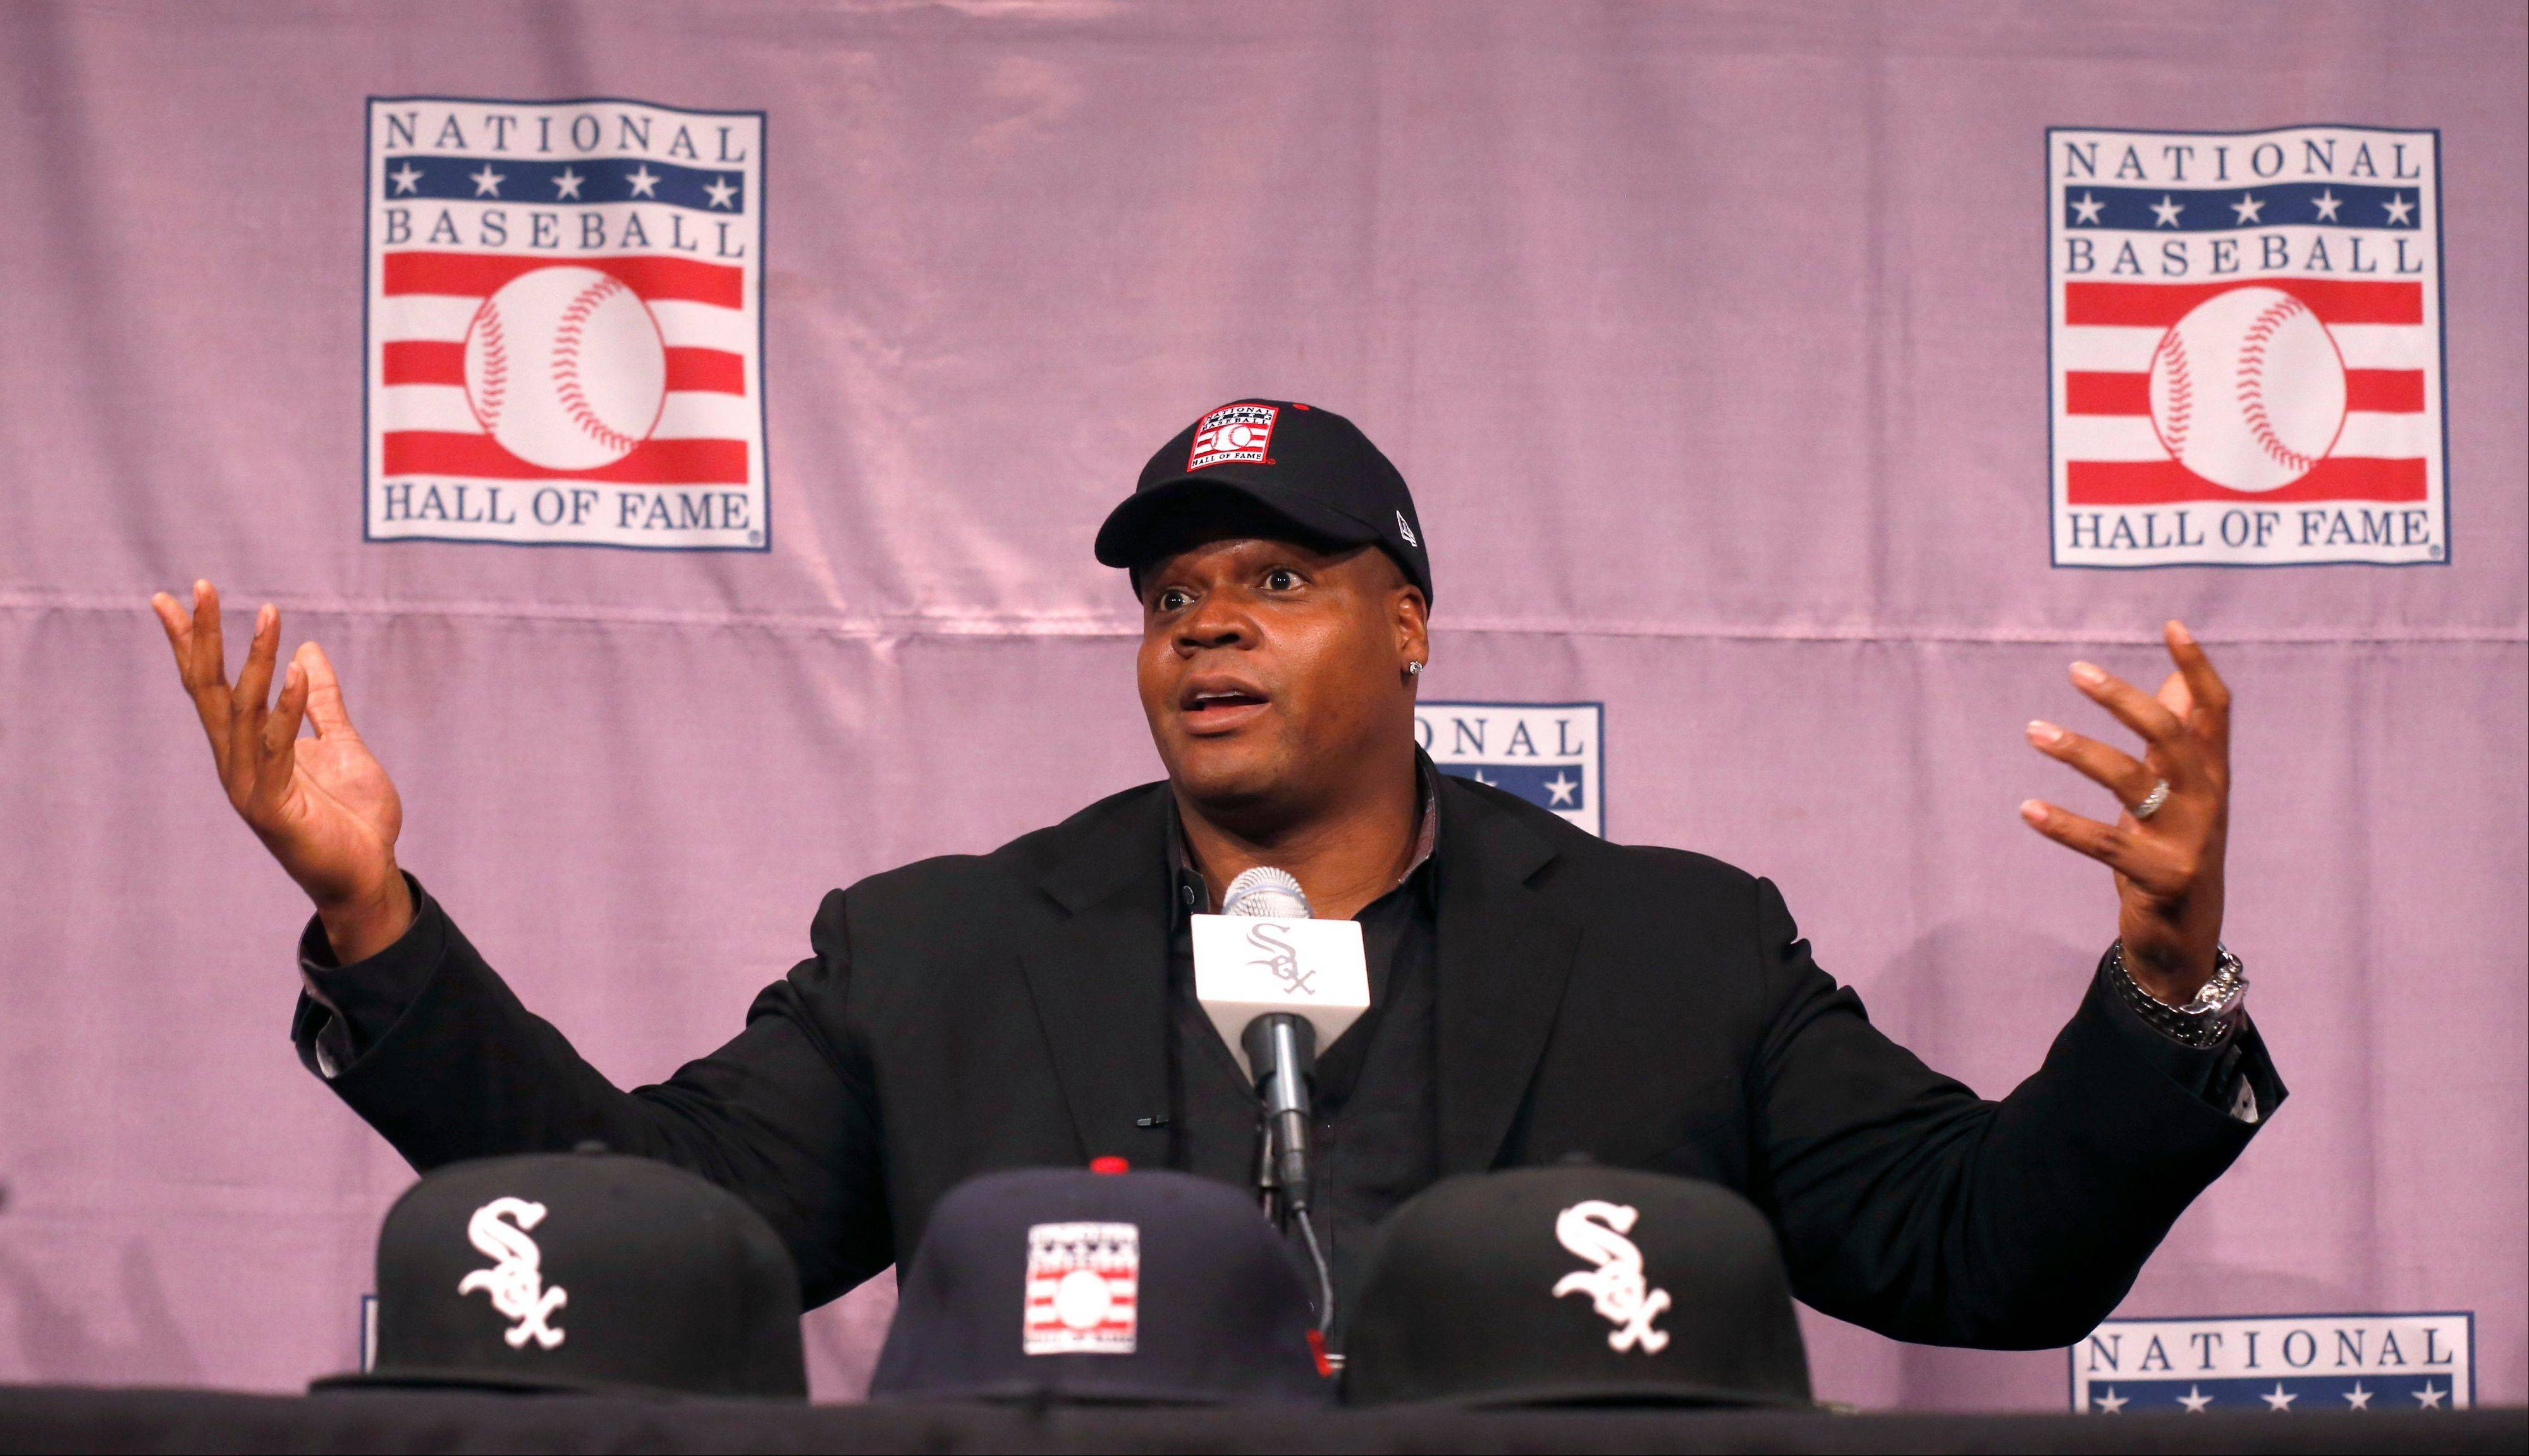 White Sox slugger Frank Thomas gestures during a news conference about his selection into the MLB Baseball Hall Of Fame Wednesday, Jan. 8, 2014, at U.S. Cellular Field in Chicago. Thomas joins Greg Maddux and Tom Glavine as first ballot inductees Wednesday, and will be inducted in Cooperstown on July 27 along with managers Bobby Cox, Joe Torre and Tony La Russa, elected last month by the expansion-era committee.